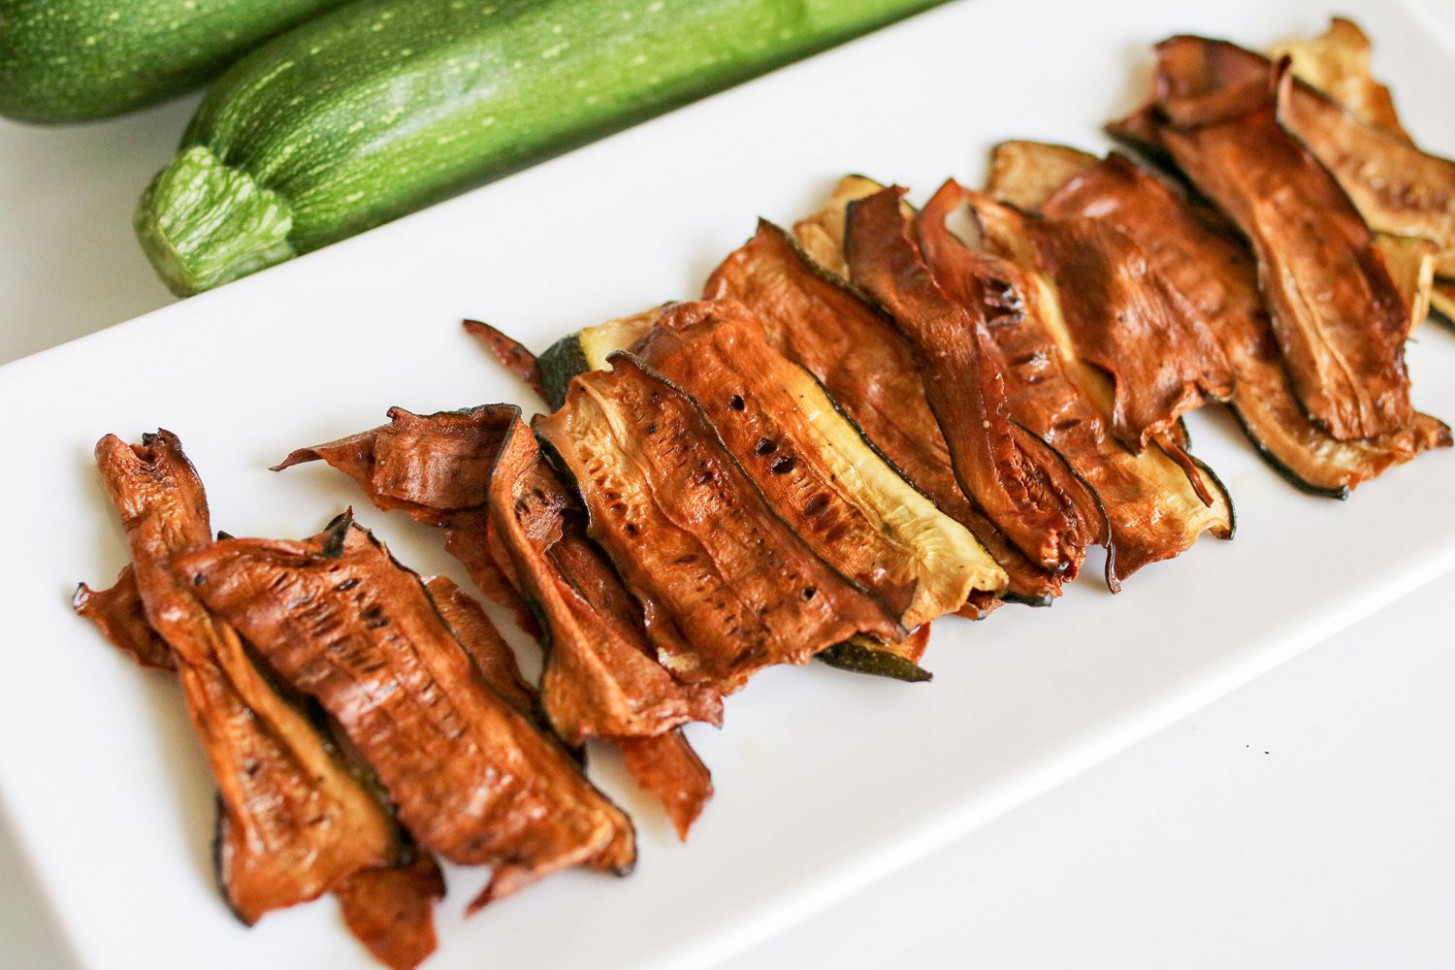 Vegan Zucchini Bacon - The Super Mom Life - zucchini recipes vegetarian